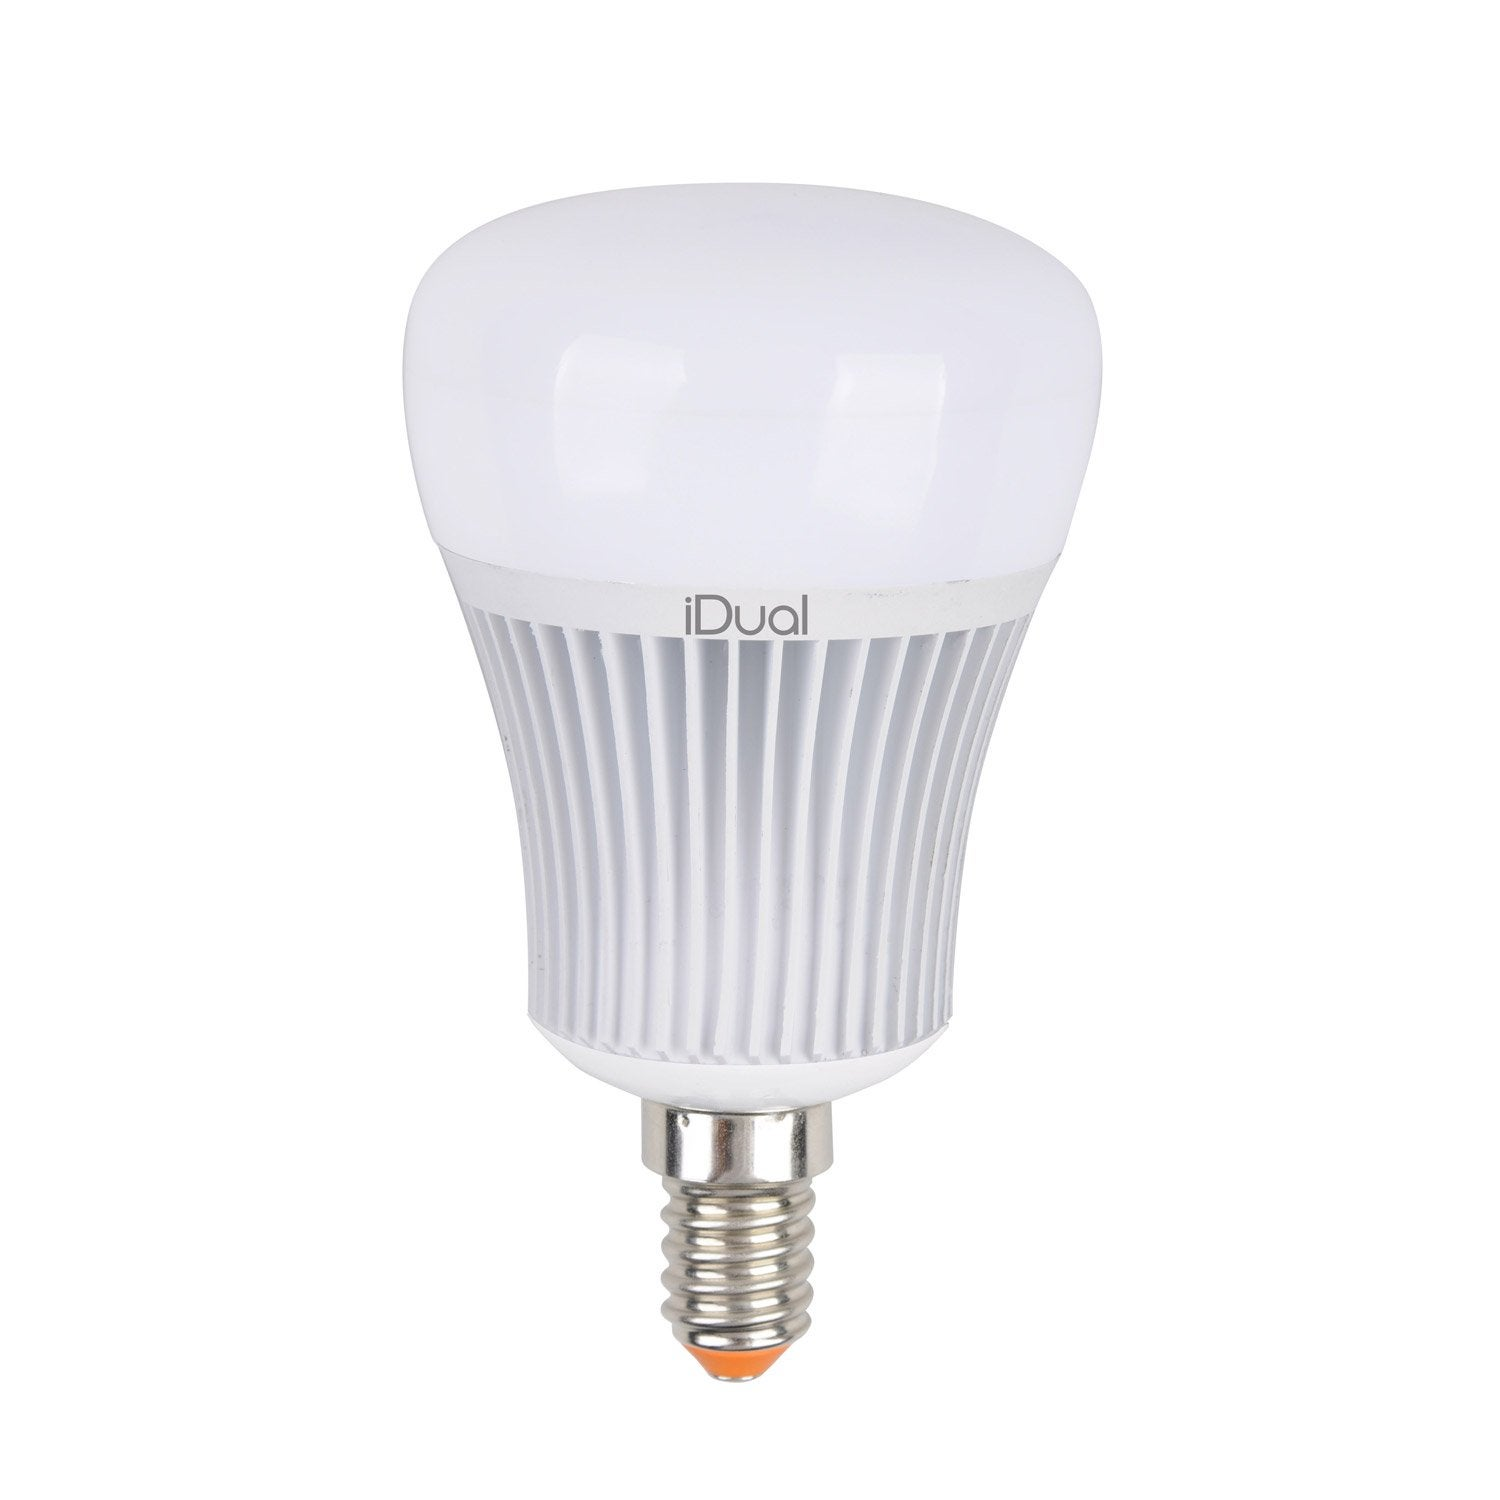 Led Bulb Color Change 7w 470lm E27 Idual Jedi